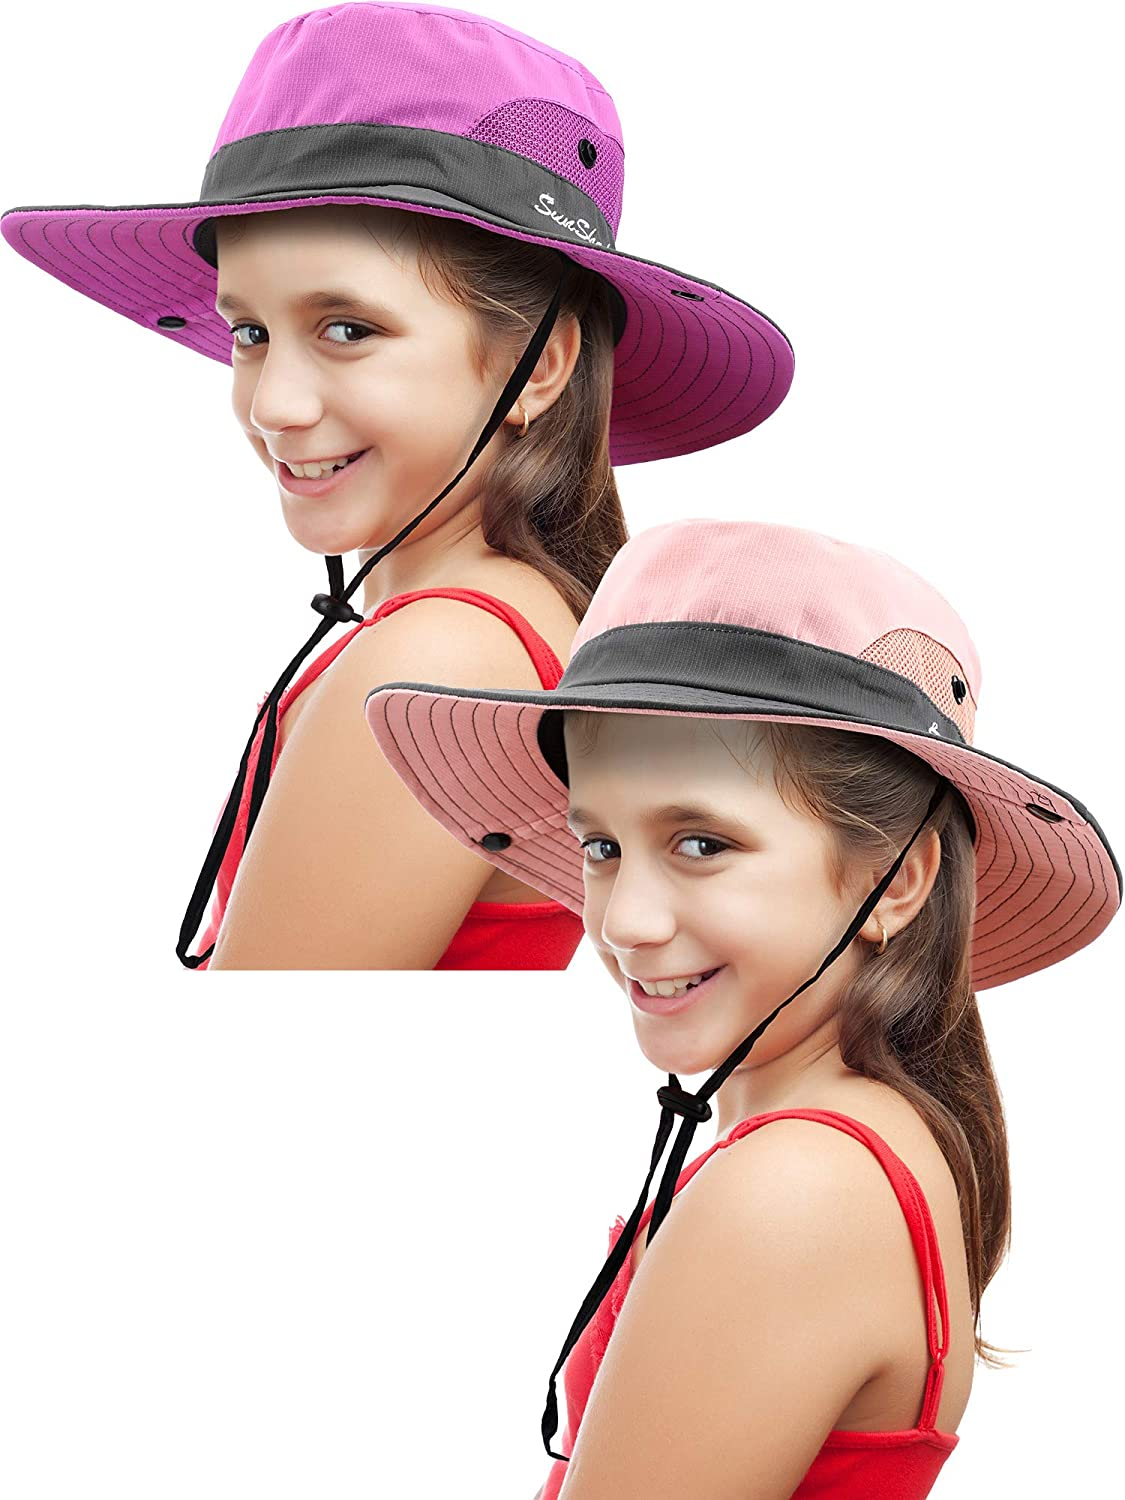 2 Pieces Kids Summer Sun Hat Broad-Brimmed Beach Cap Sun Protection Bucket Hat with Ponytail Hole